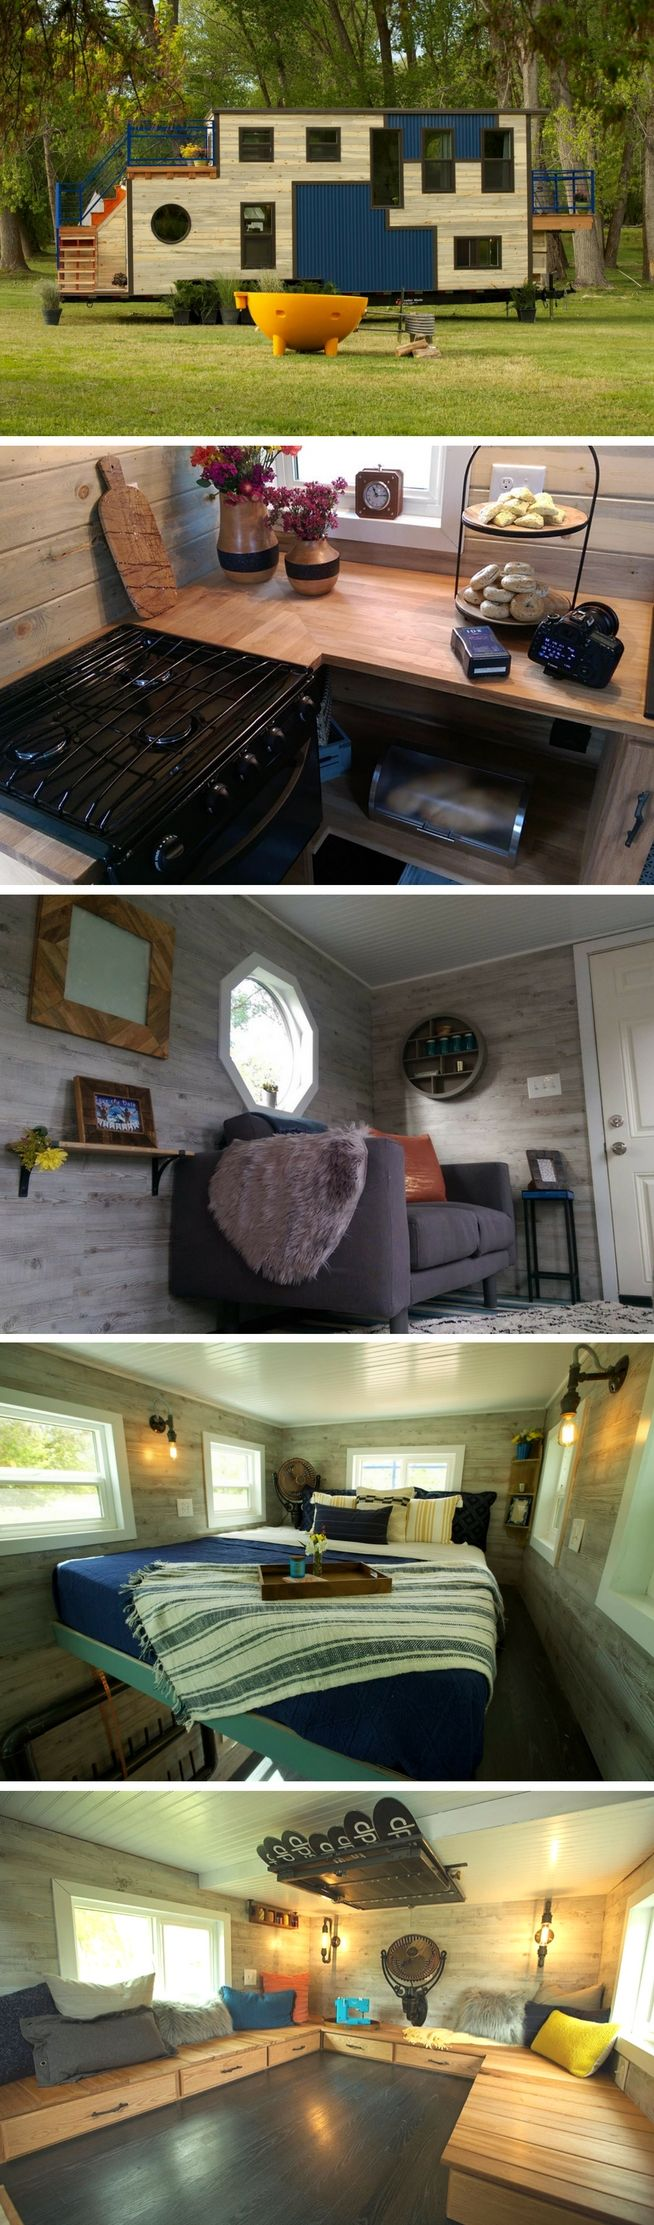 The Tiny Ski House, featured on Tiny House Nation